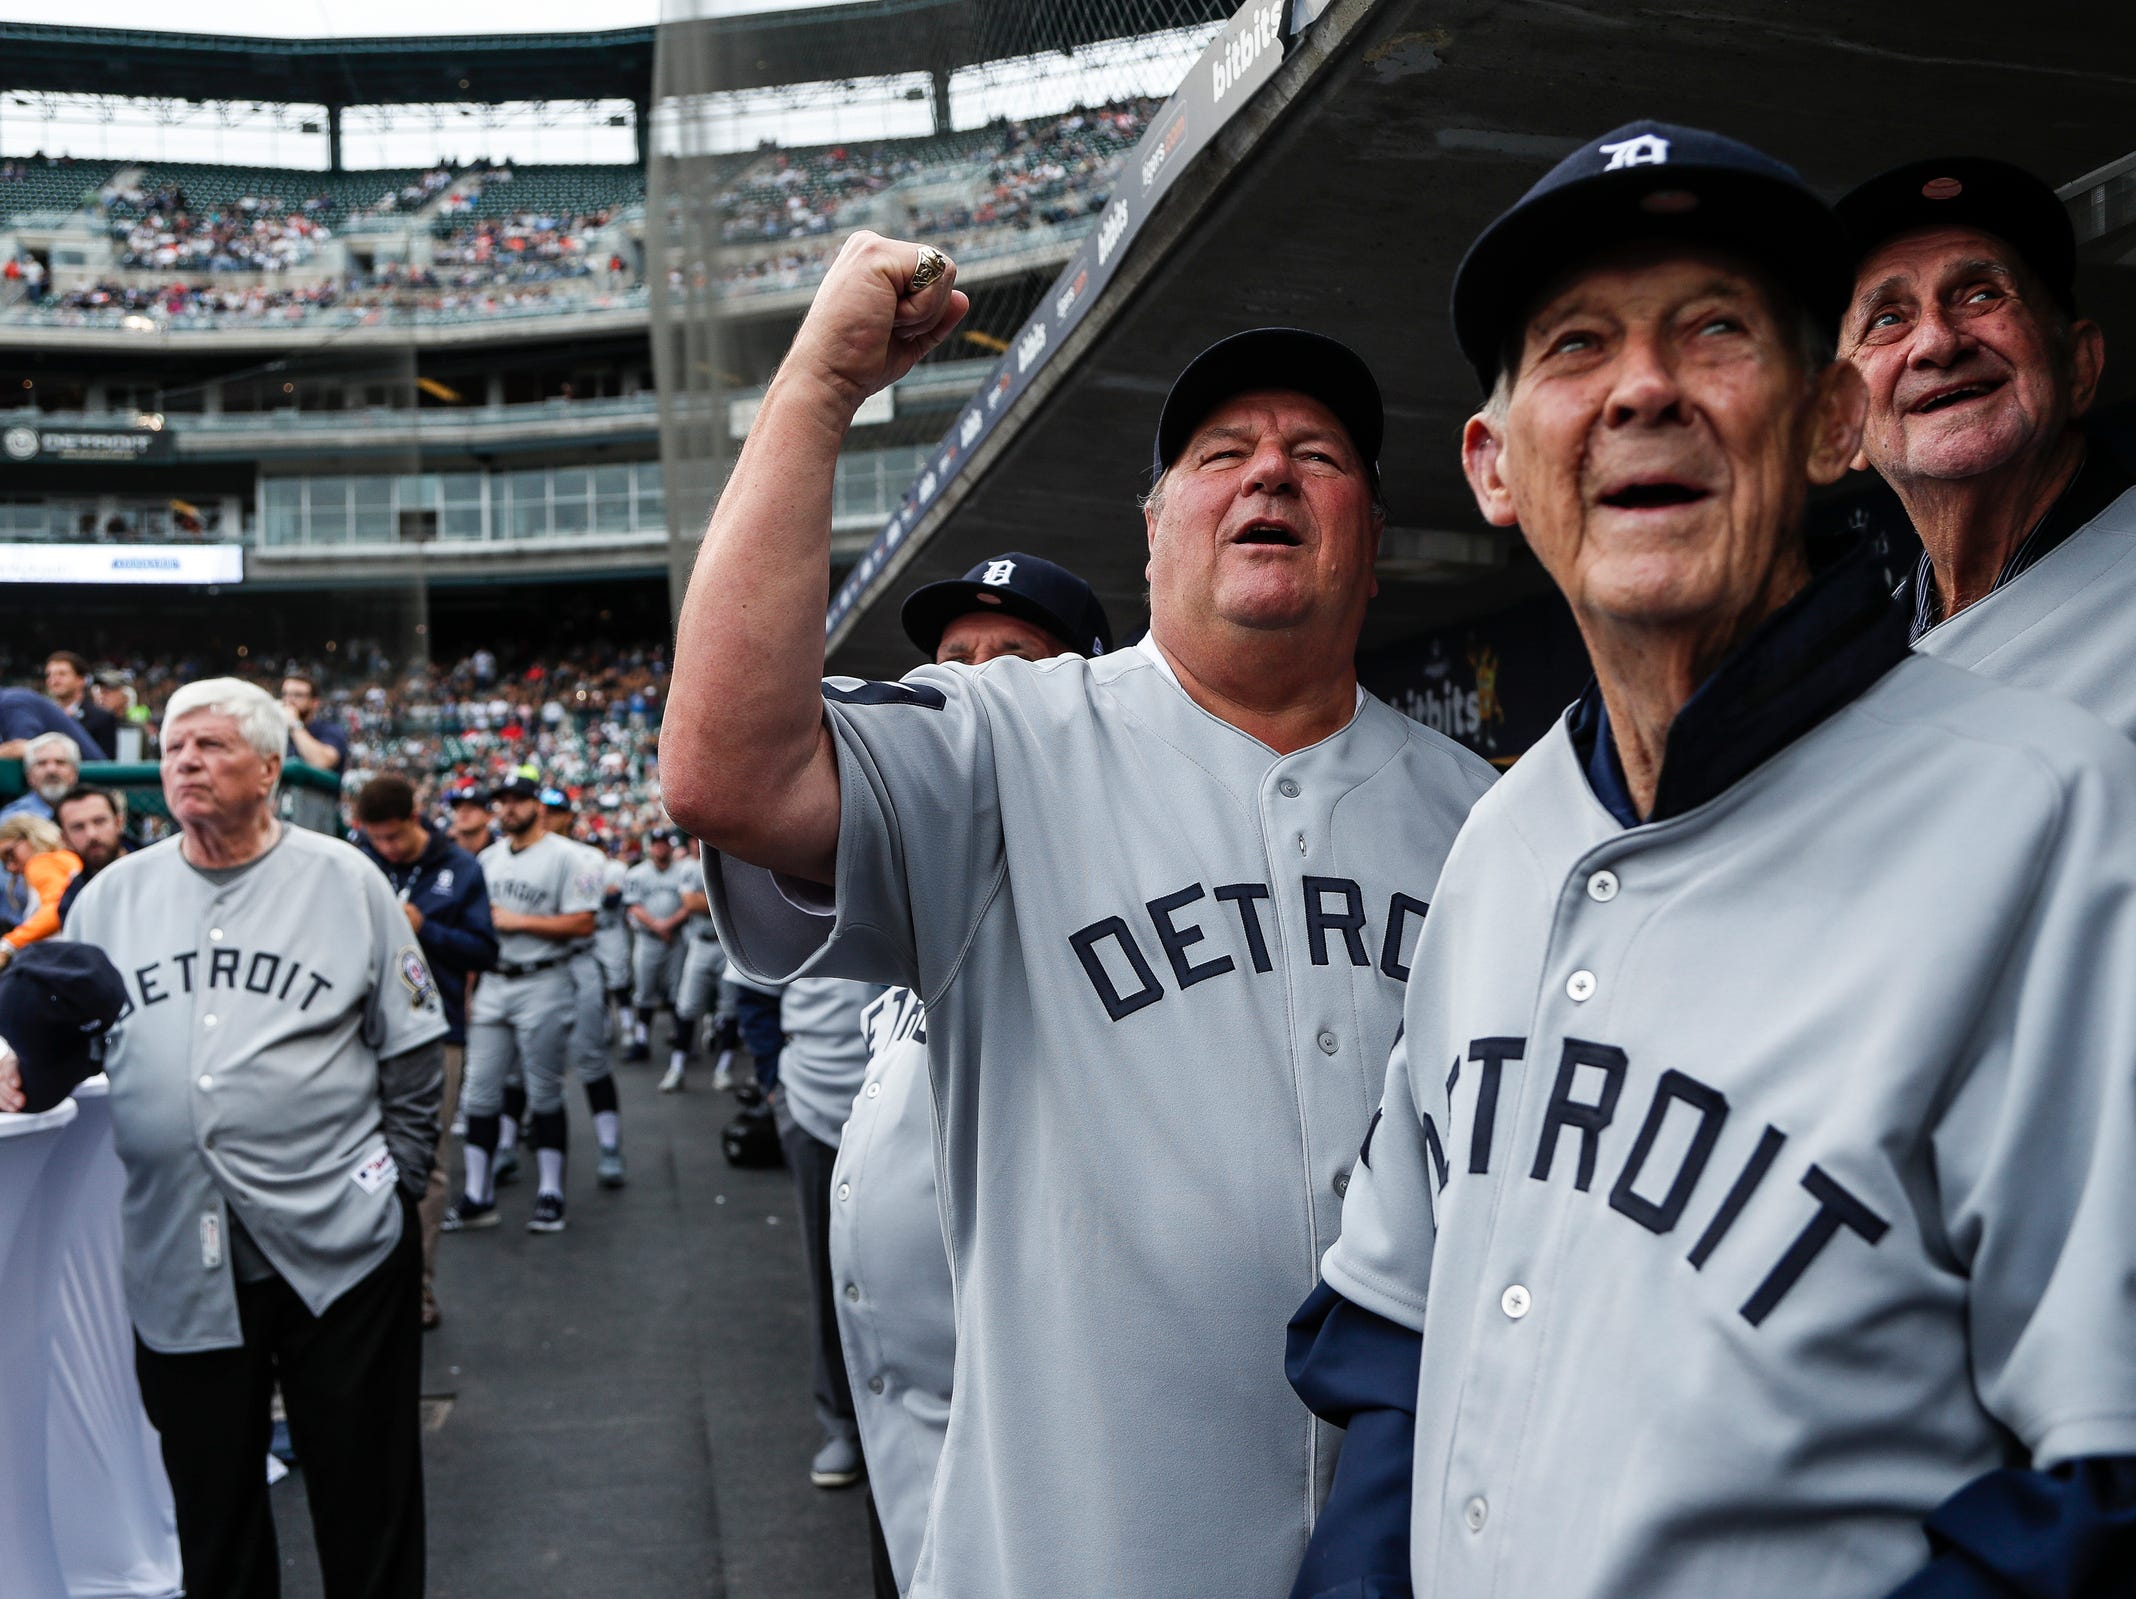 Former Tigers Jon Warden, center, coach Hal Naragon, third base Don Wert, far right, cheer as they watch highlights from the 1968 season during Detroit Tigers celebration of the 50th anniversary of 1968 World Series championship at Comerica Park in downtown Detroit, Saturday, September 8, 2018. Former catcher Jim Price is on far left.